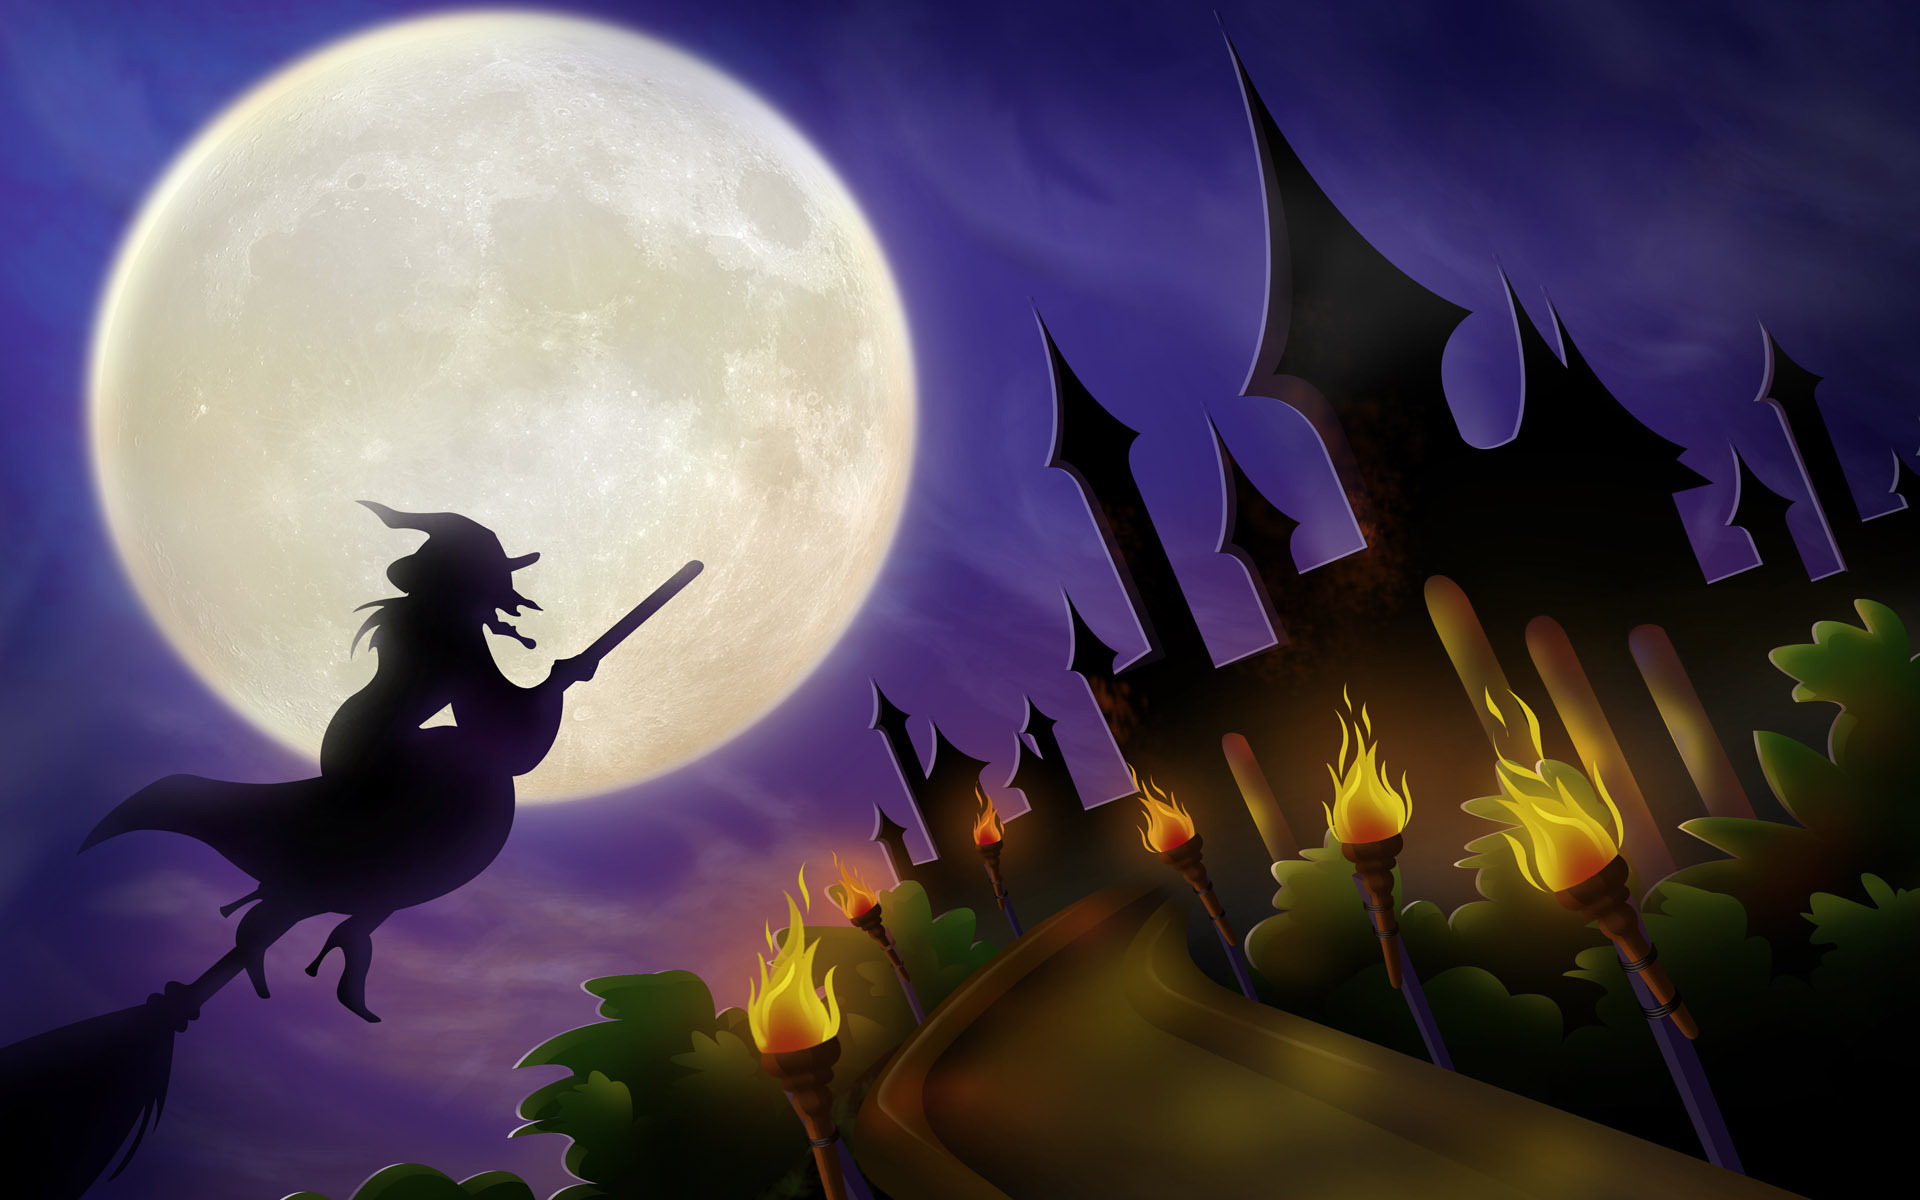 Castello Halloween.Halloween Castello Fantasy Wallpaper 11064561 Fanpop